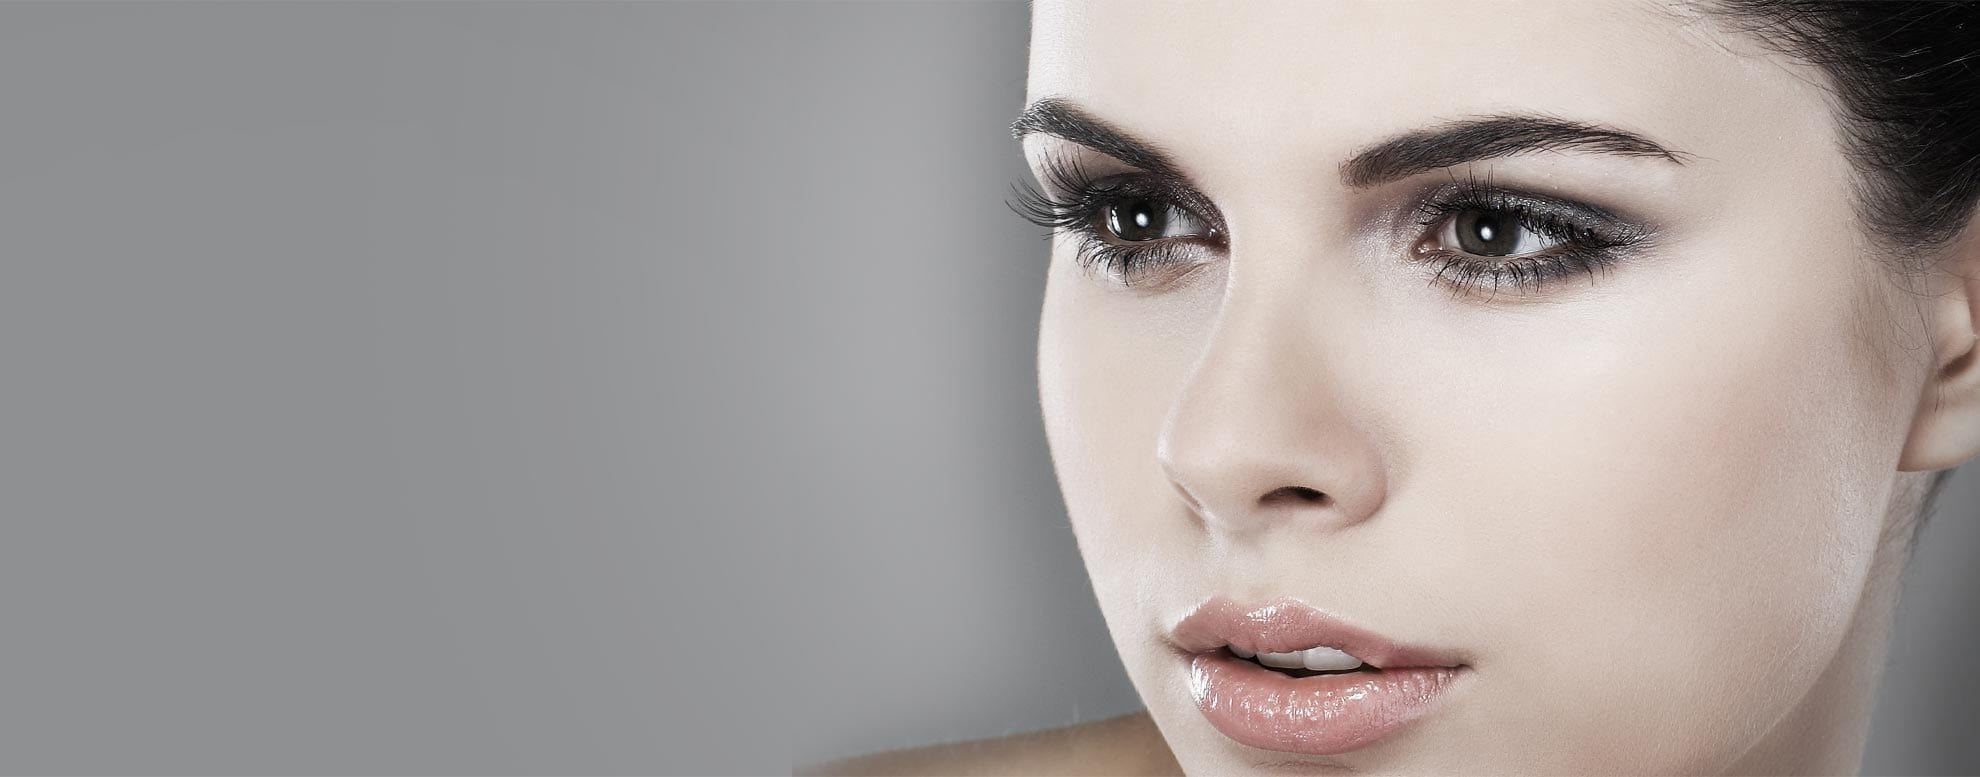 AESTHETICS & NON-SURGICAL TREATMENTS